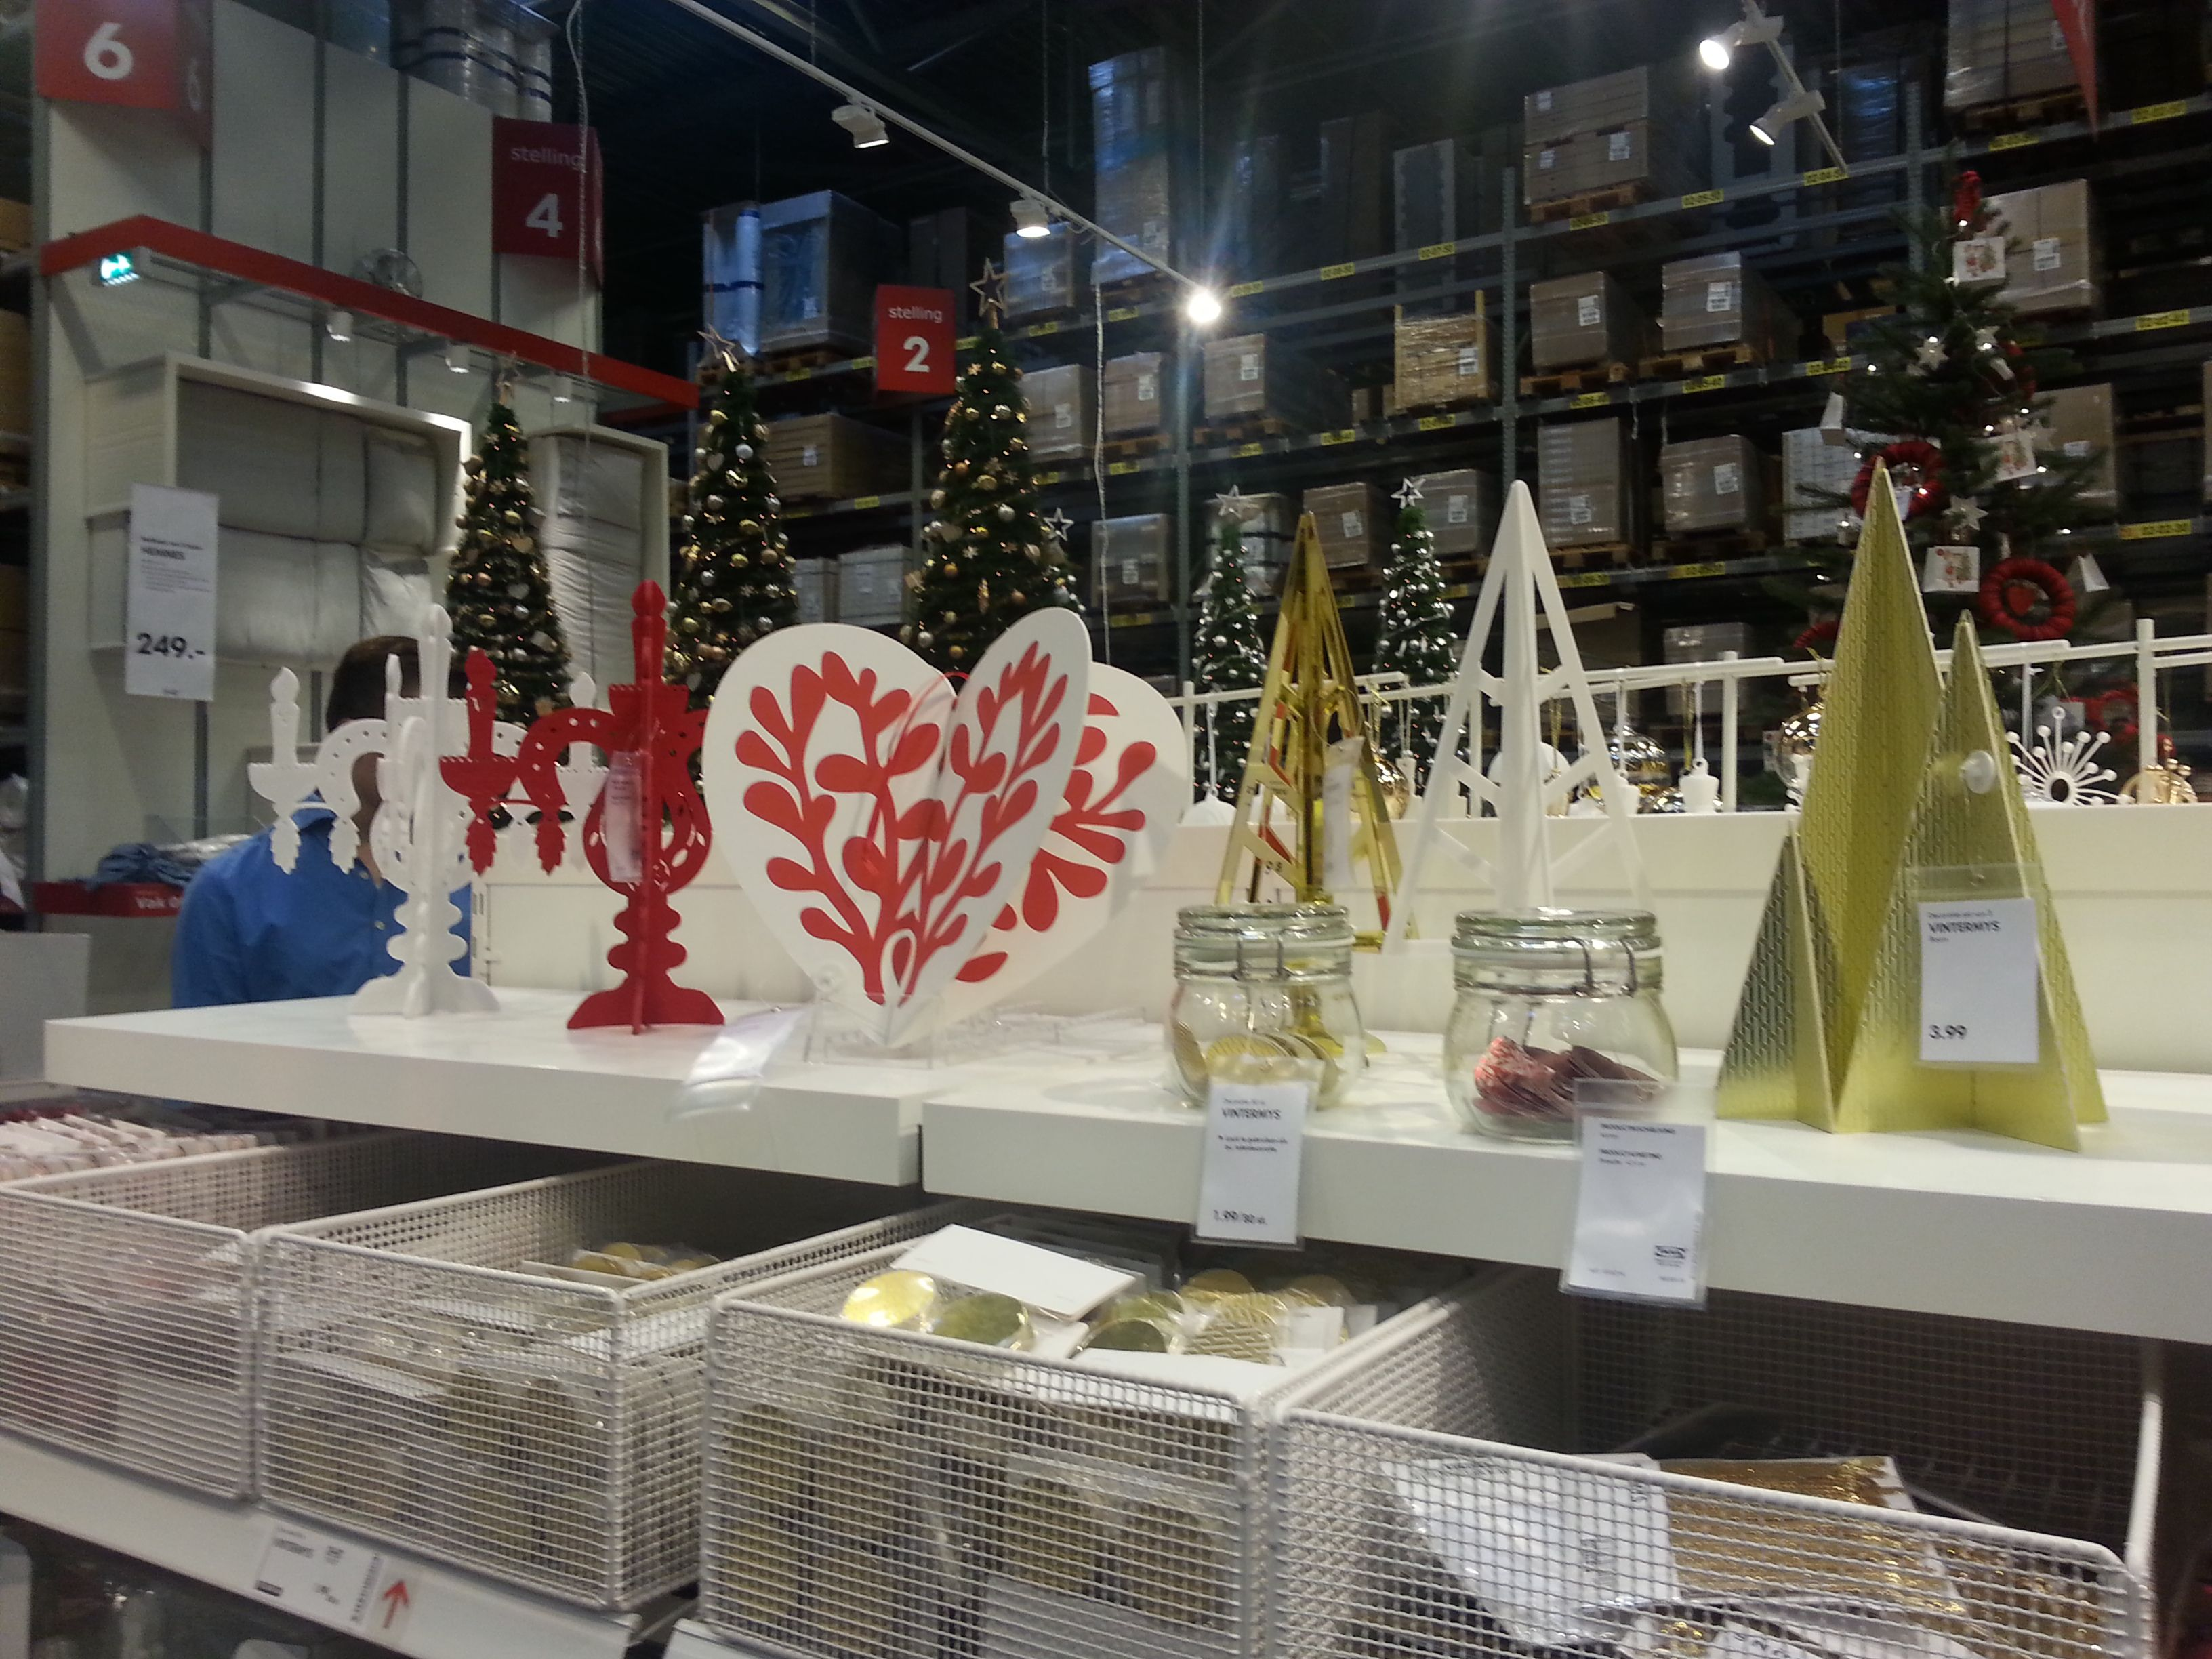 Decoration Ikea Christmas Decorations From Ikea Google Search Kpw